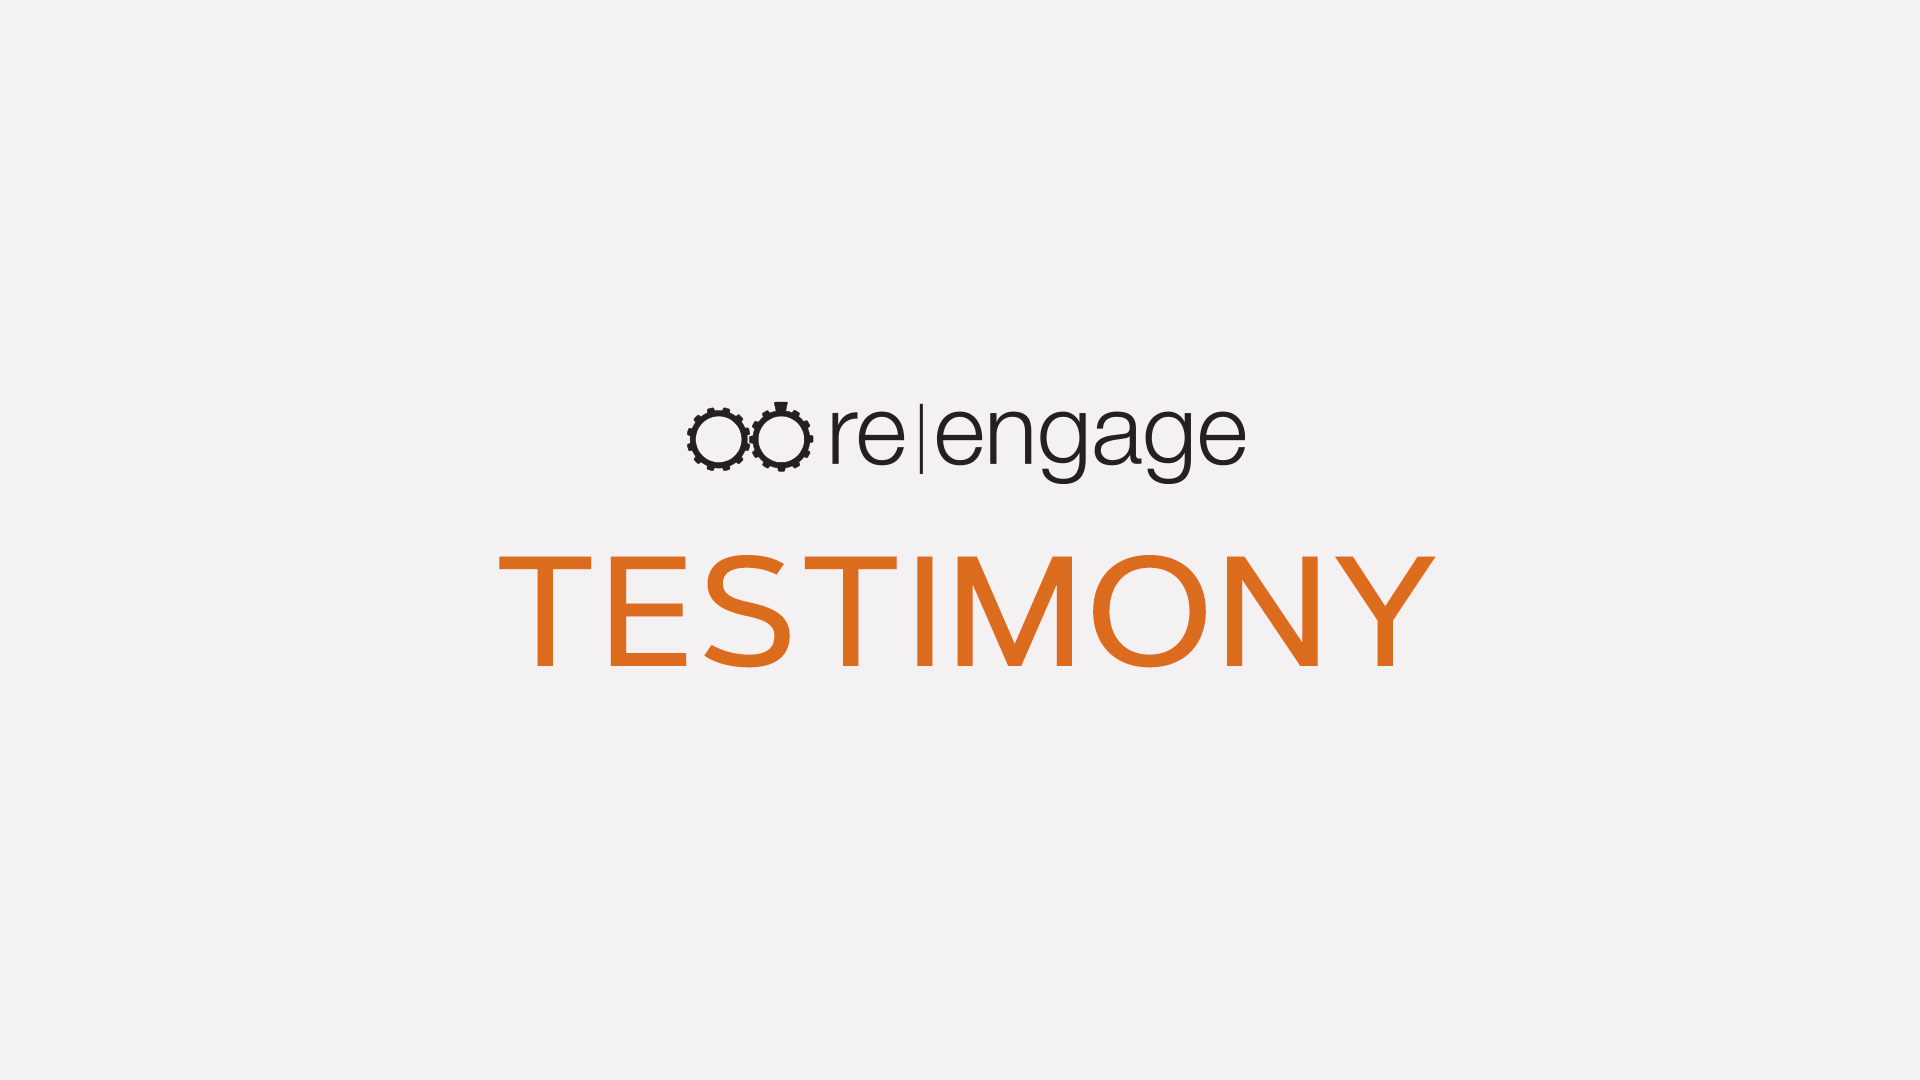 Testimony - Greg and Emily Goodin